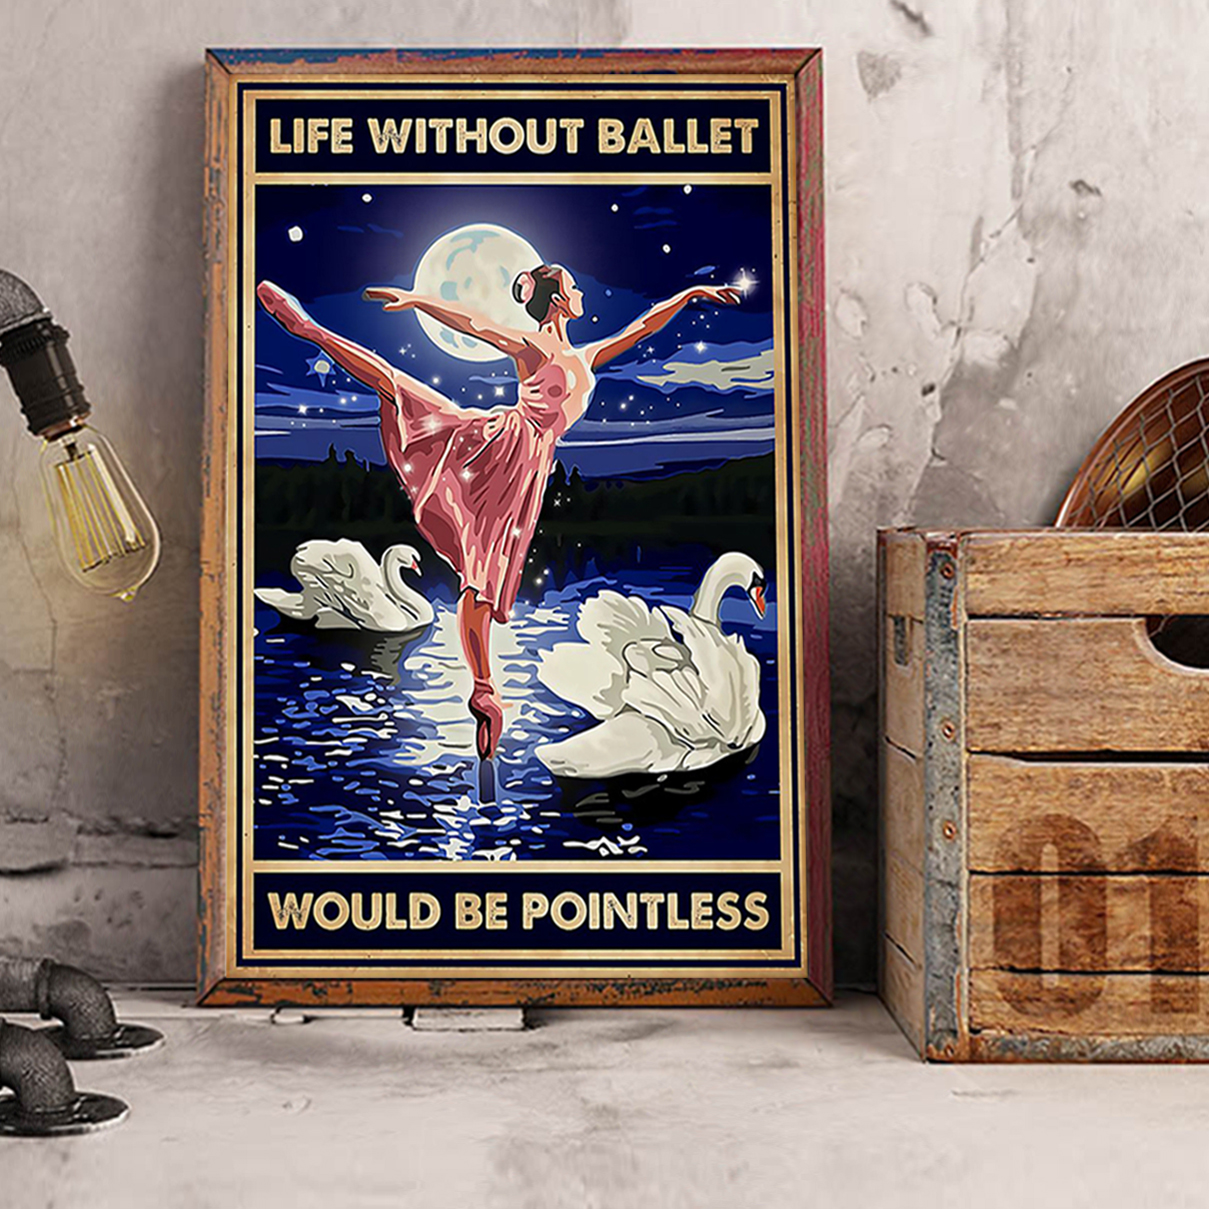 Life without ballet would be pointless poster A3